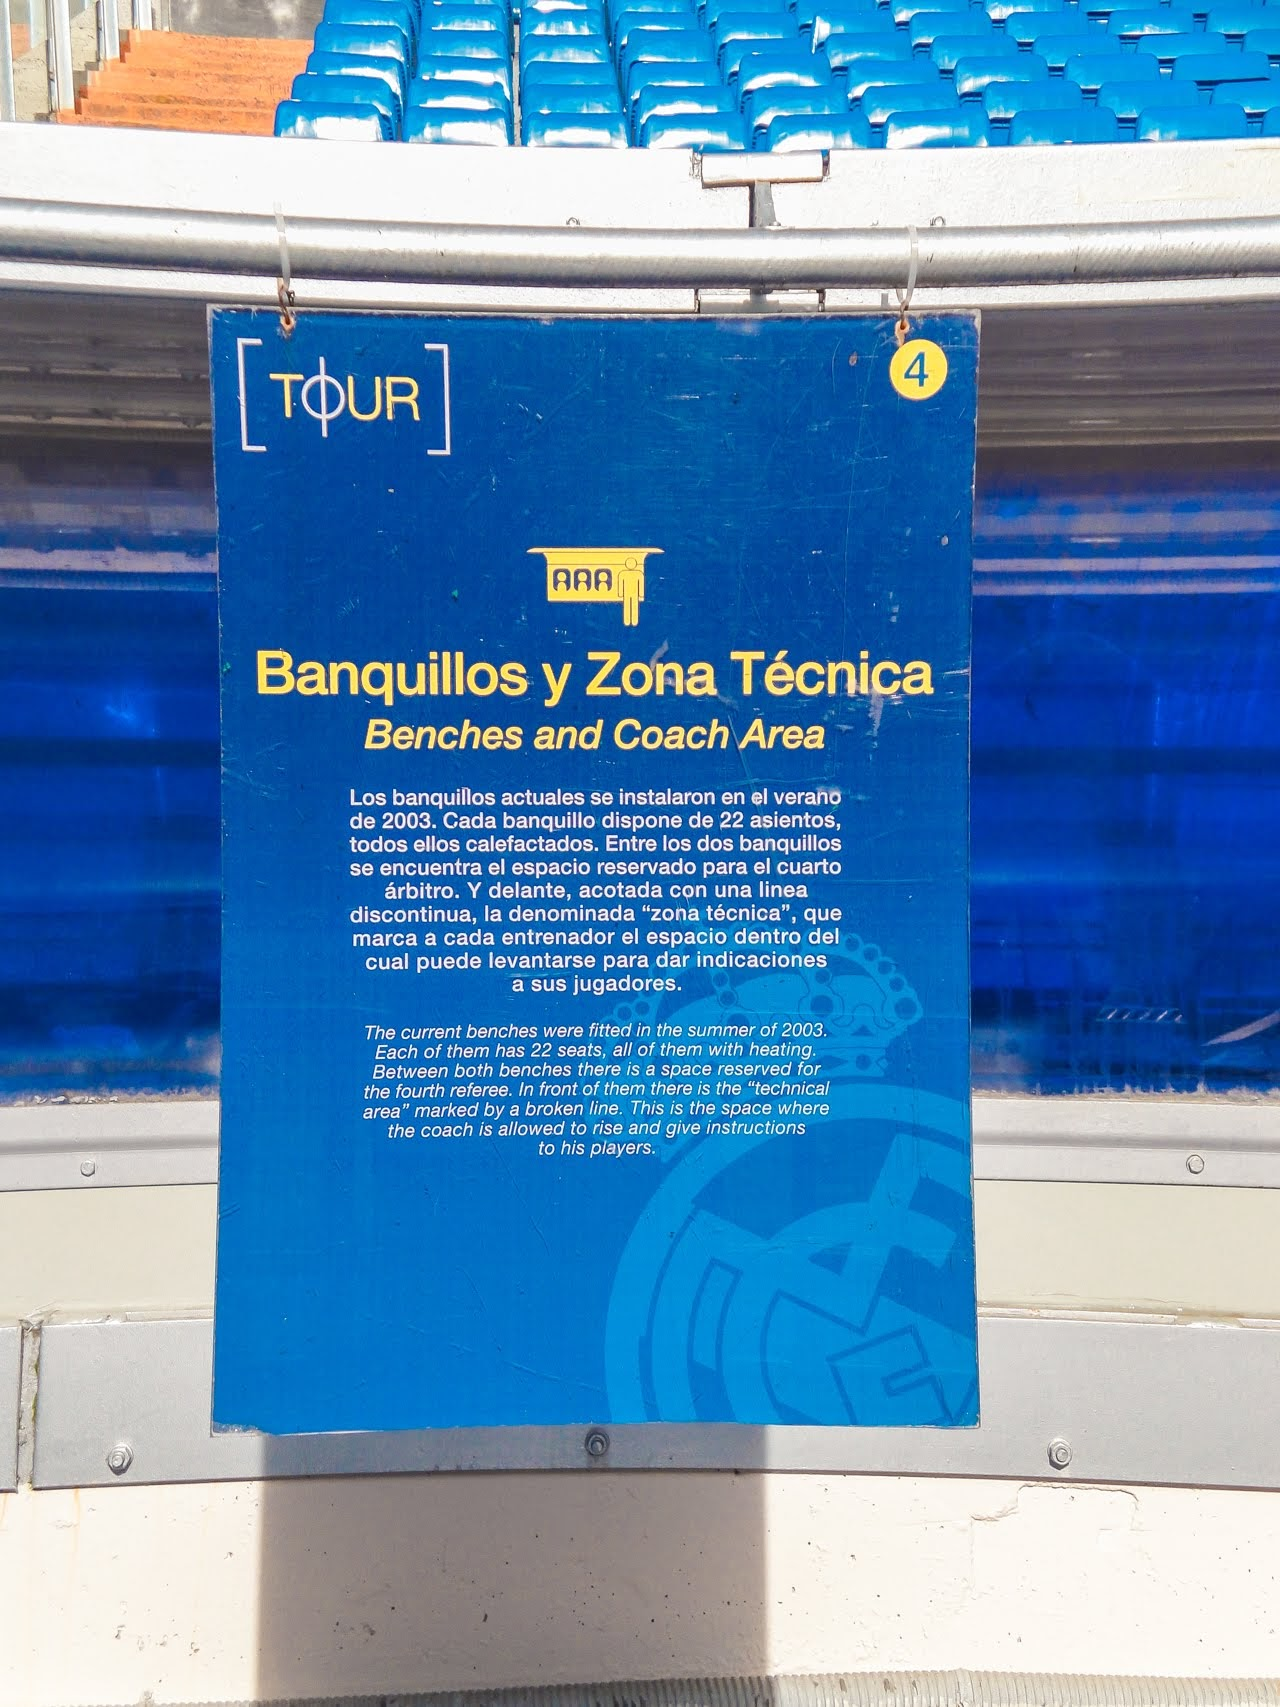 A sign explaining how all 22 seats were fitted in 2003